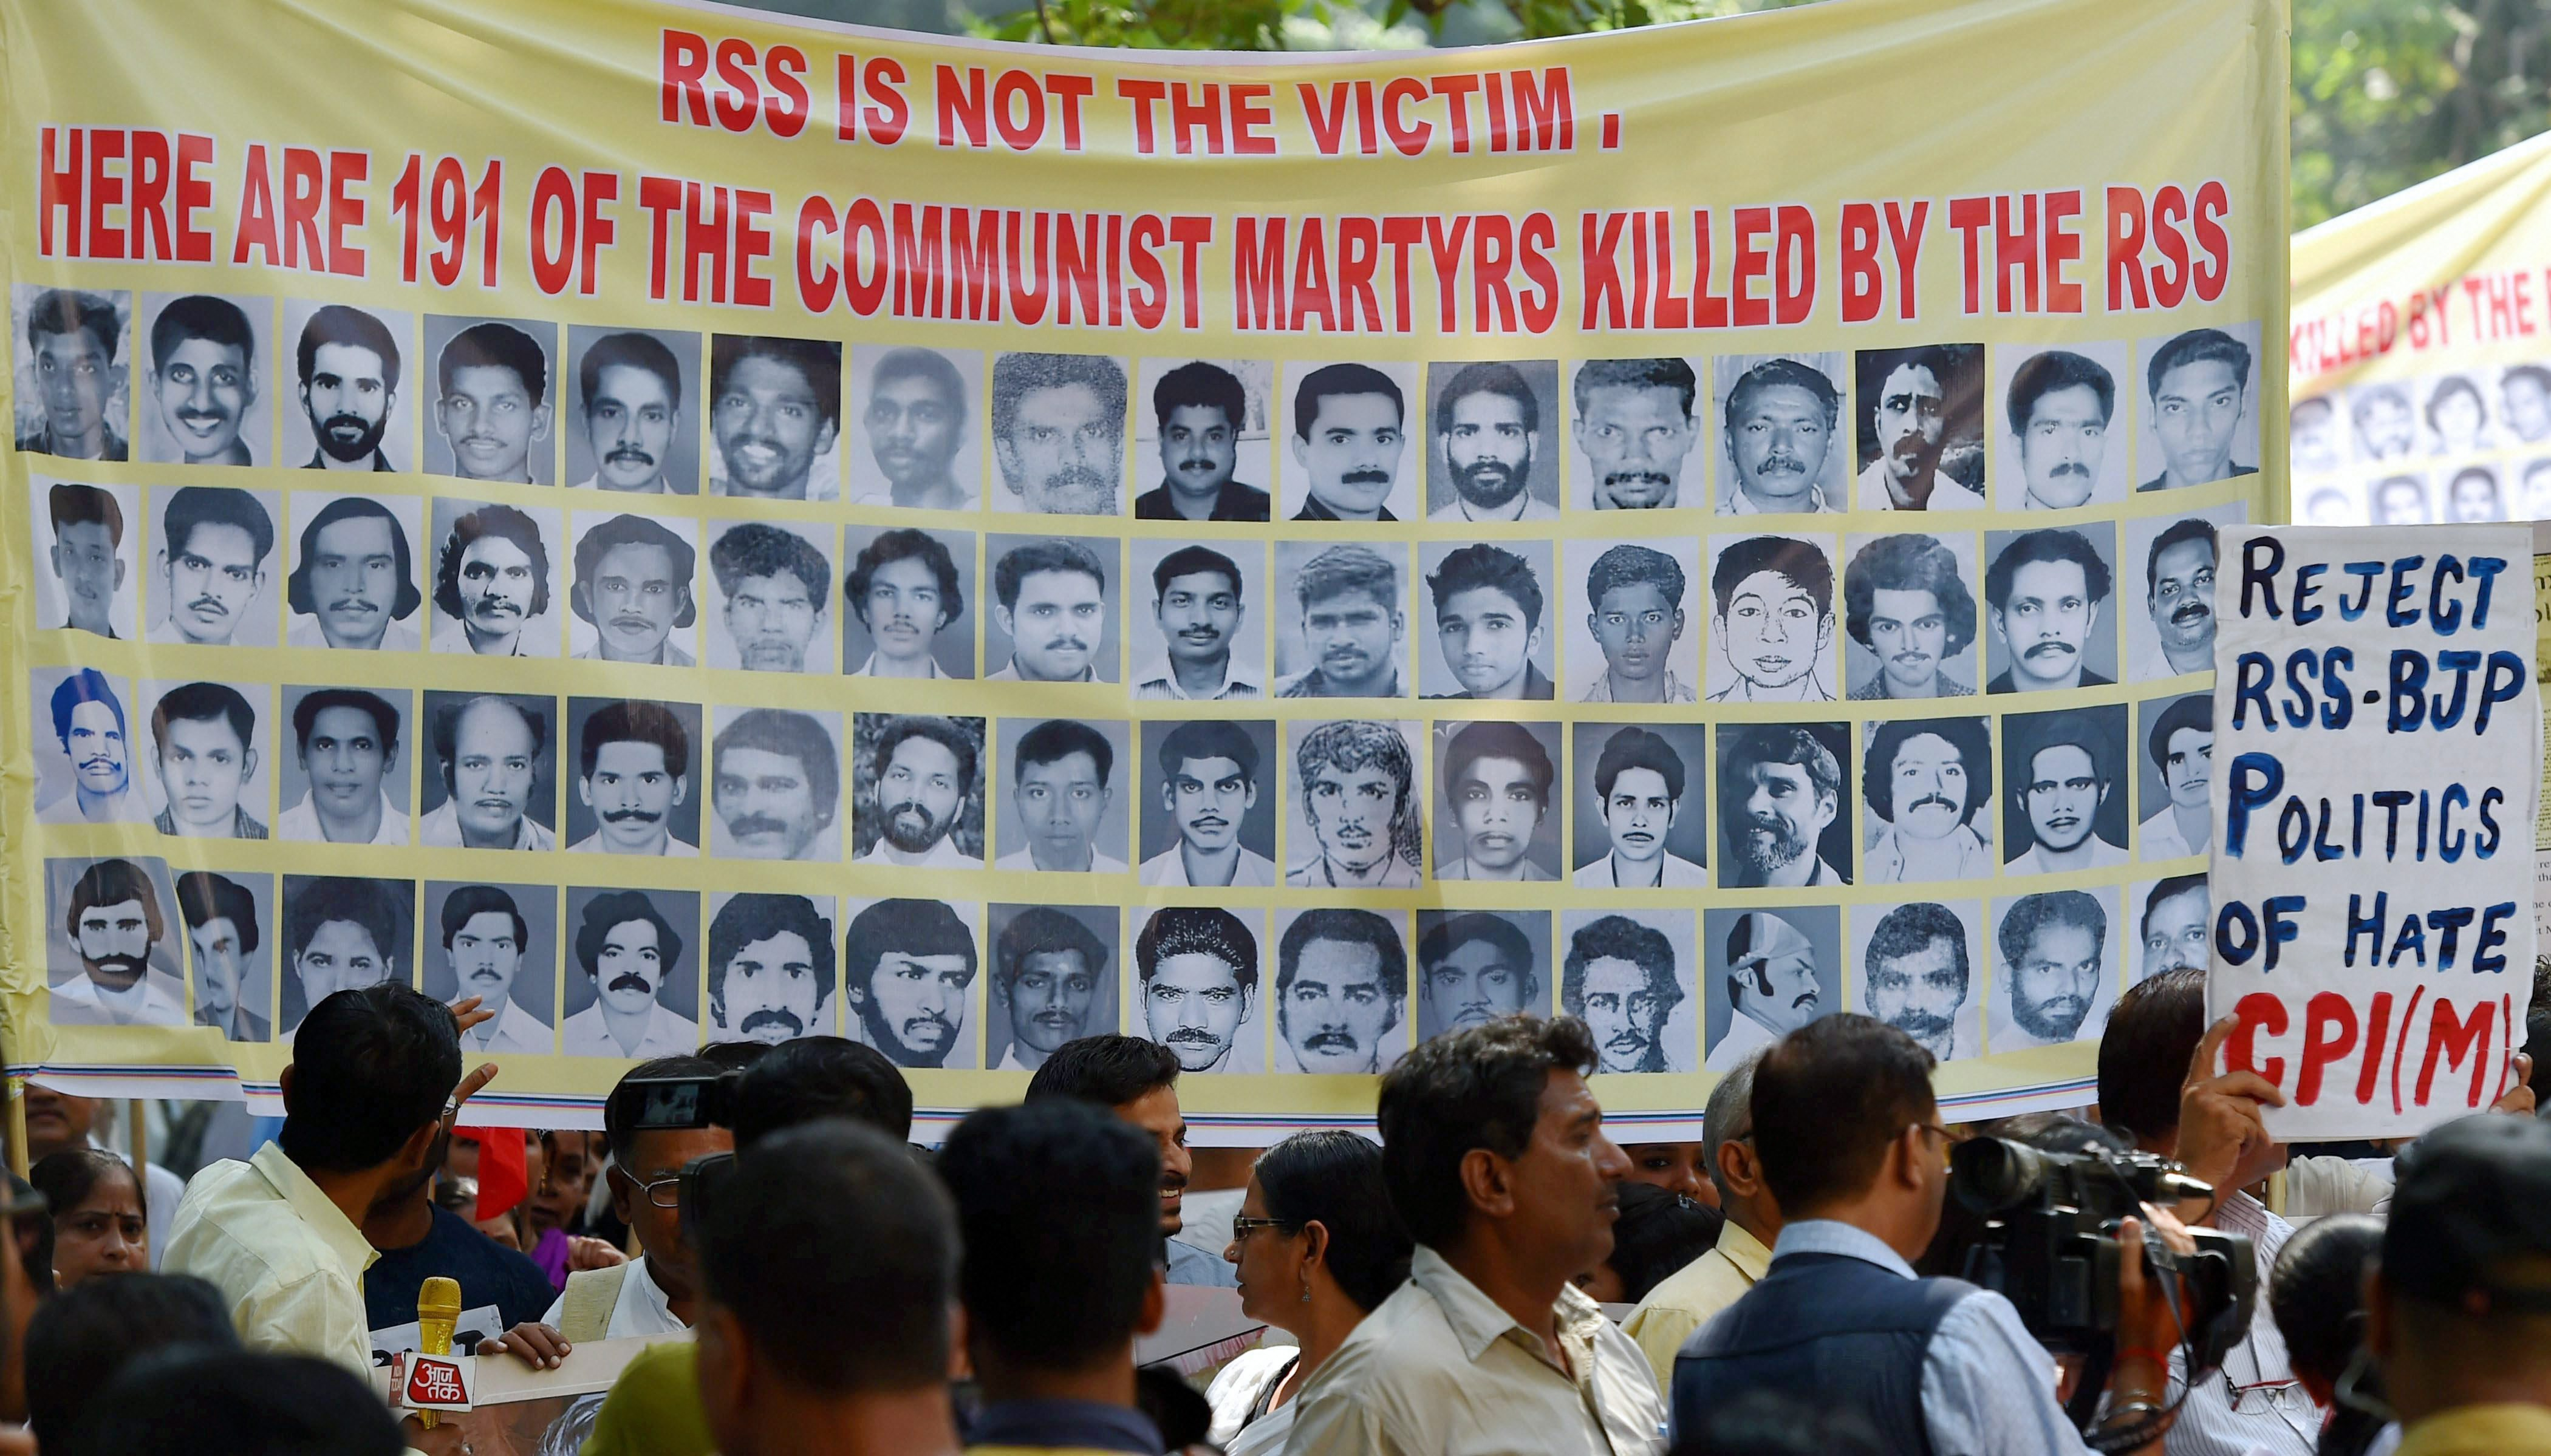 New Delhi: CPI (M) supporters during a protest at the BJP headquarters over the alleged RSS-BJP violence against its cadres and supporters in Kerala, in New Delhi on Monday. PTI Photo by Kamal Kishore (PTI10_9_2017_000050B)